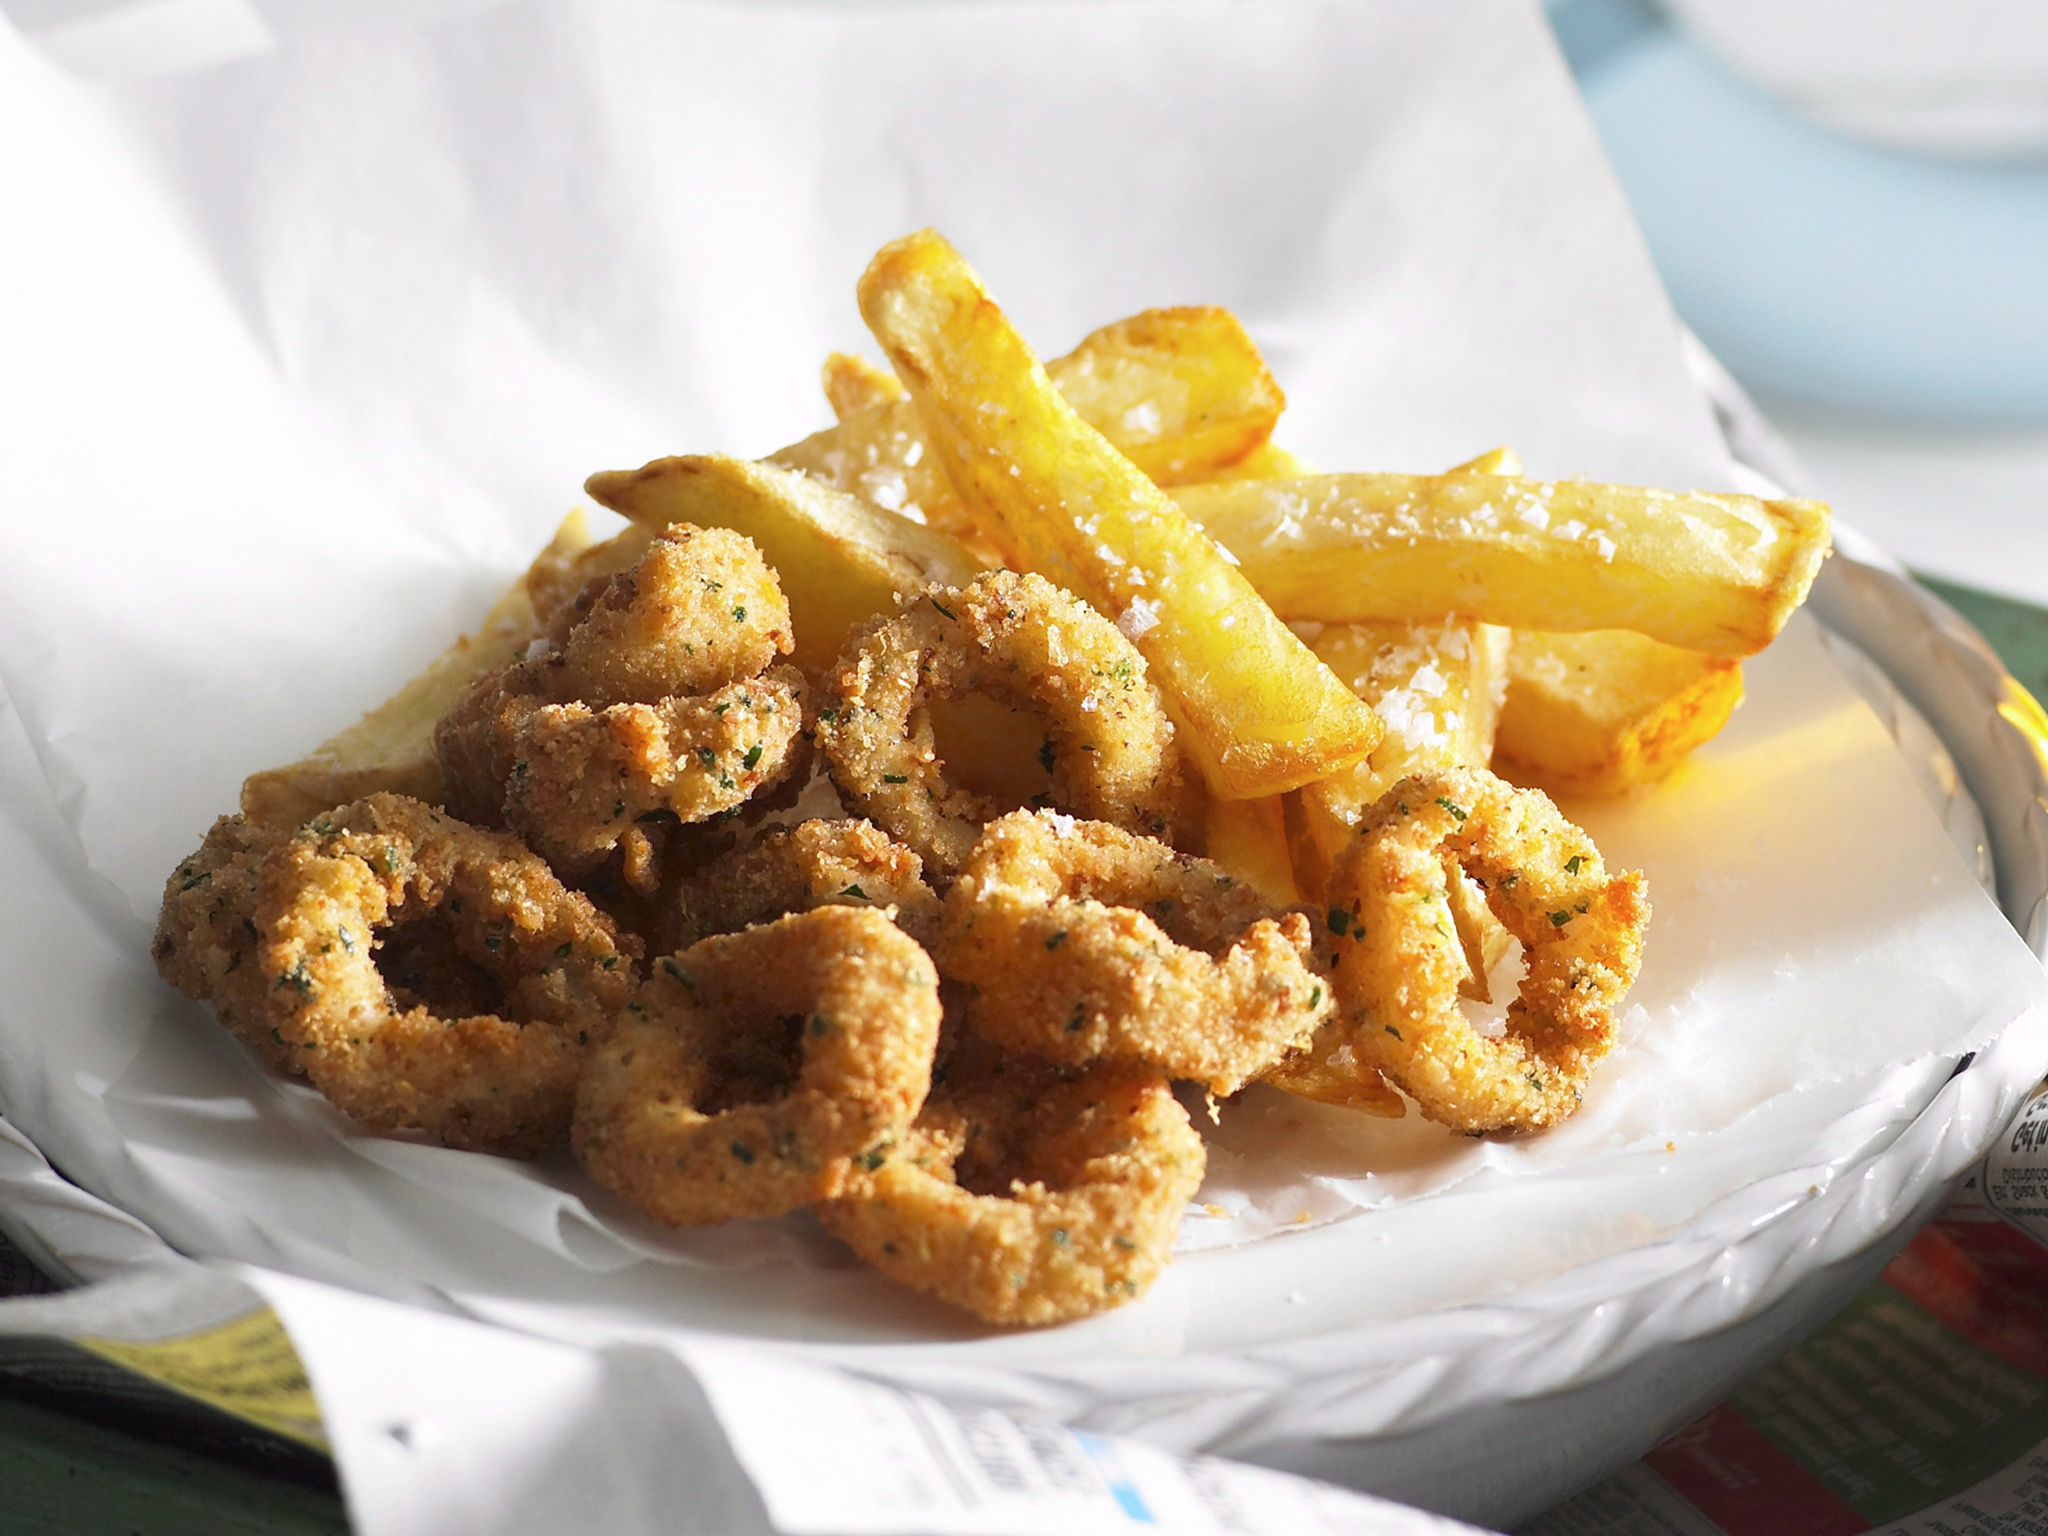 Australia Day - Calamari and Chips